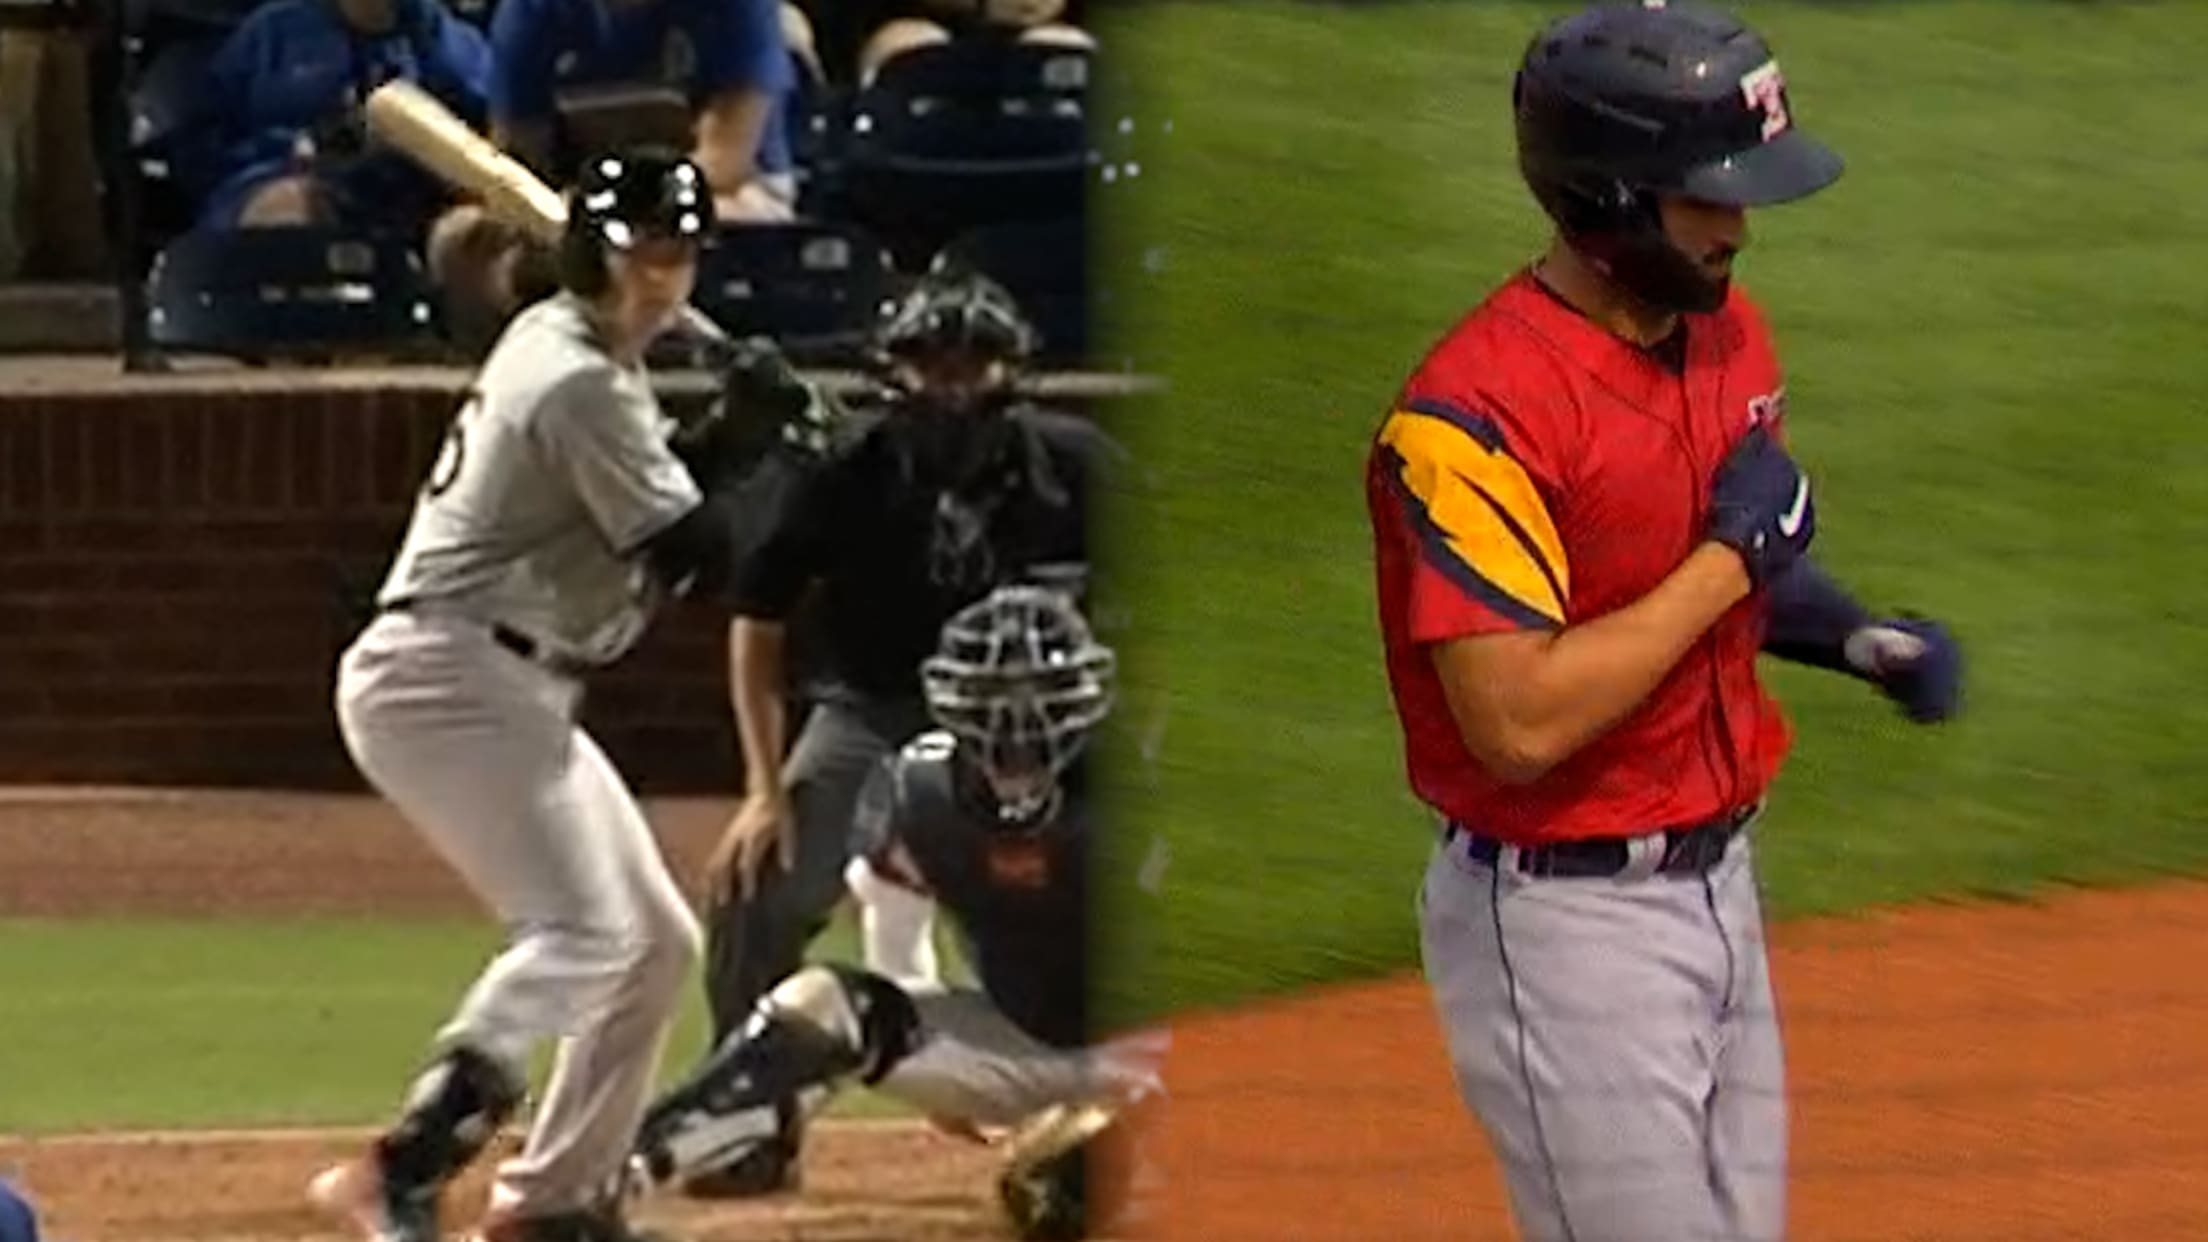 Top prospects shine in Minors